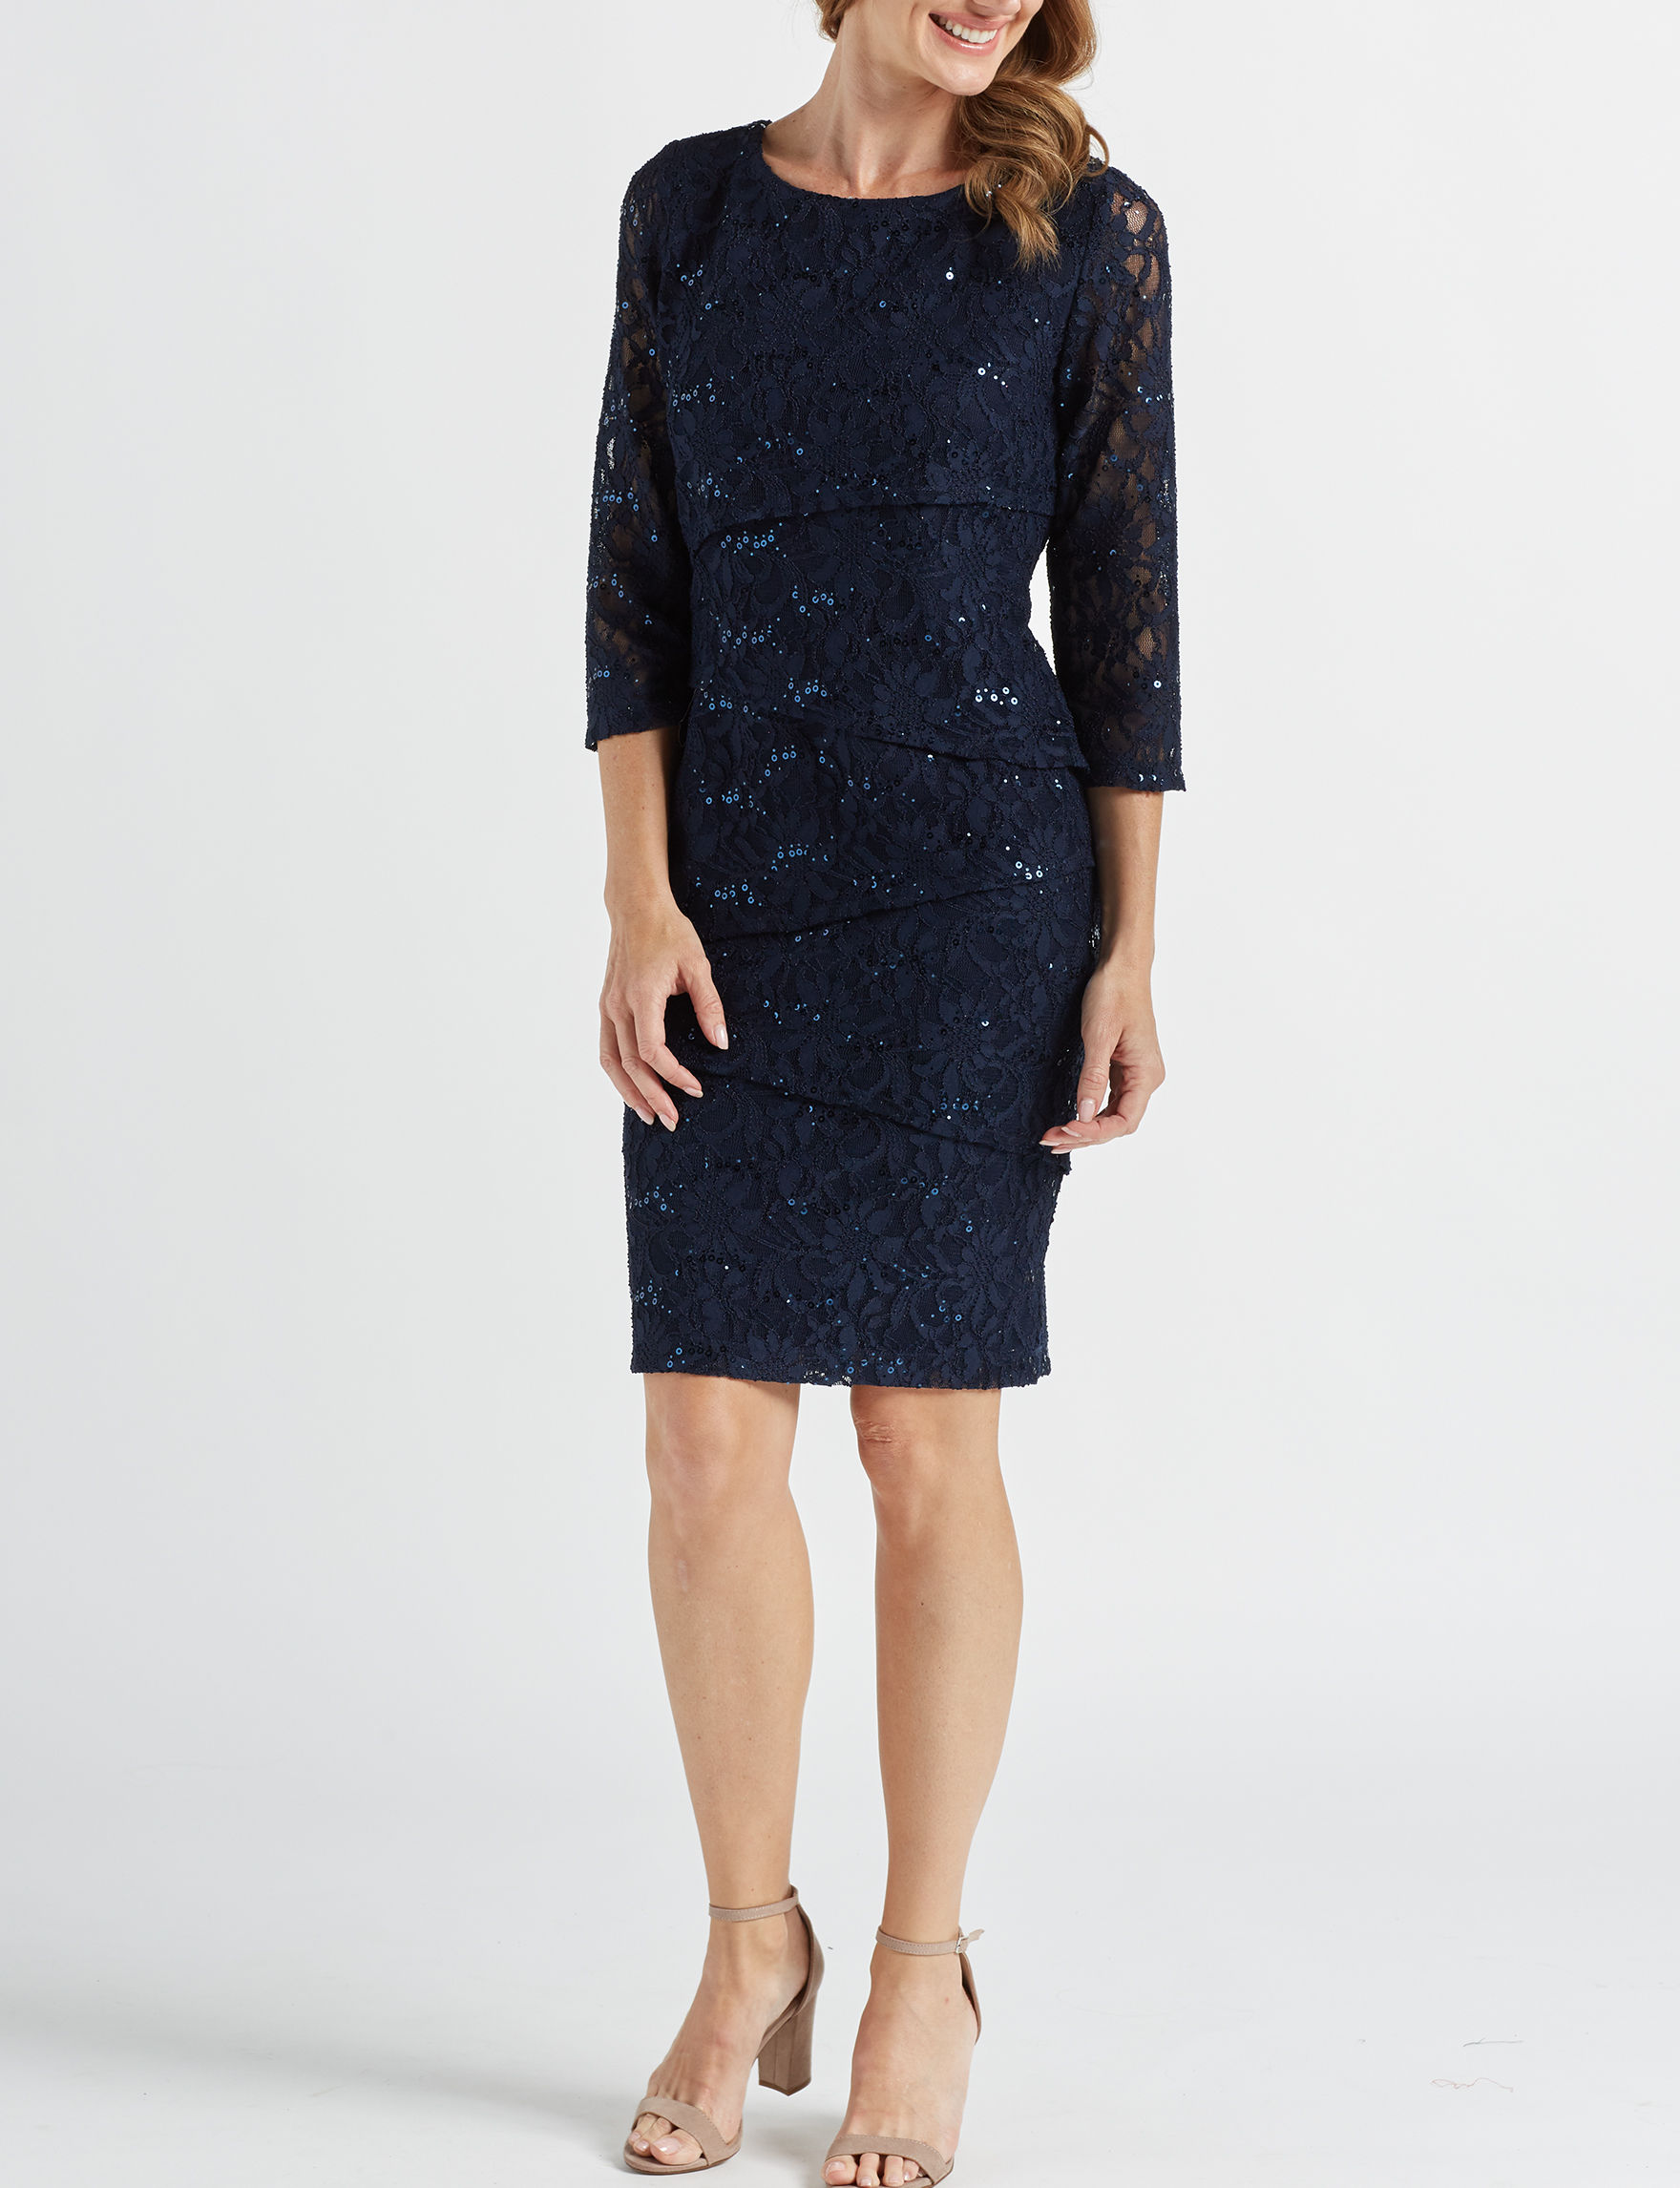 Ronni Nicole Navy Cocktail & Party Evening & Formal Sheath Dresses